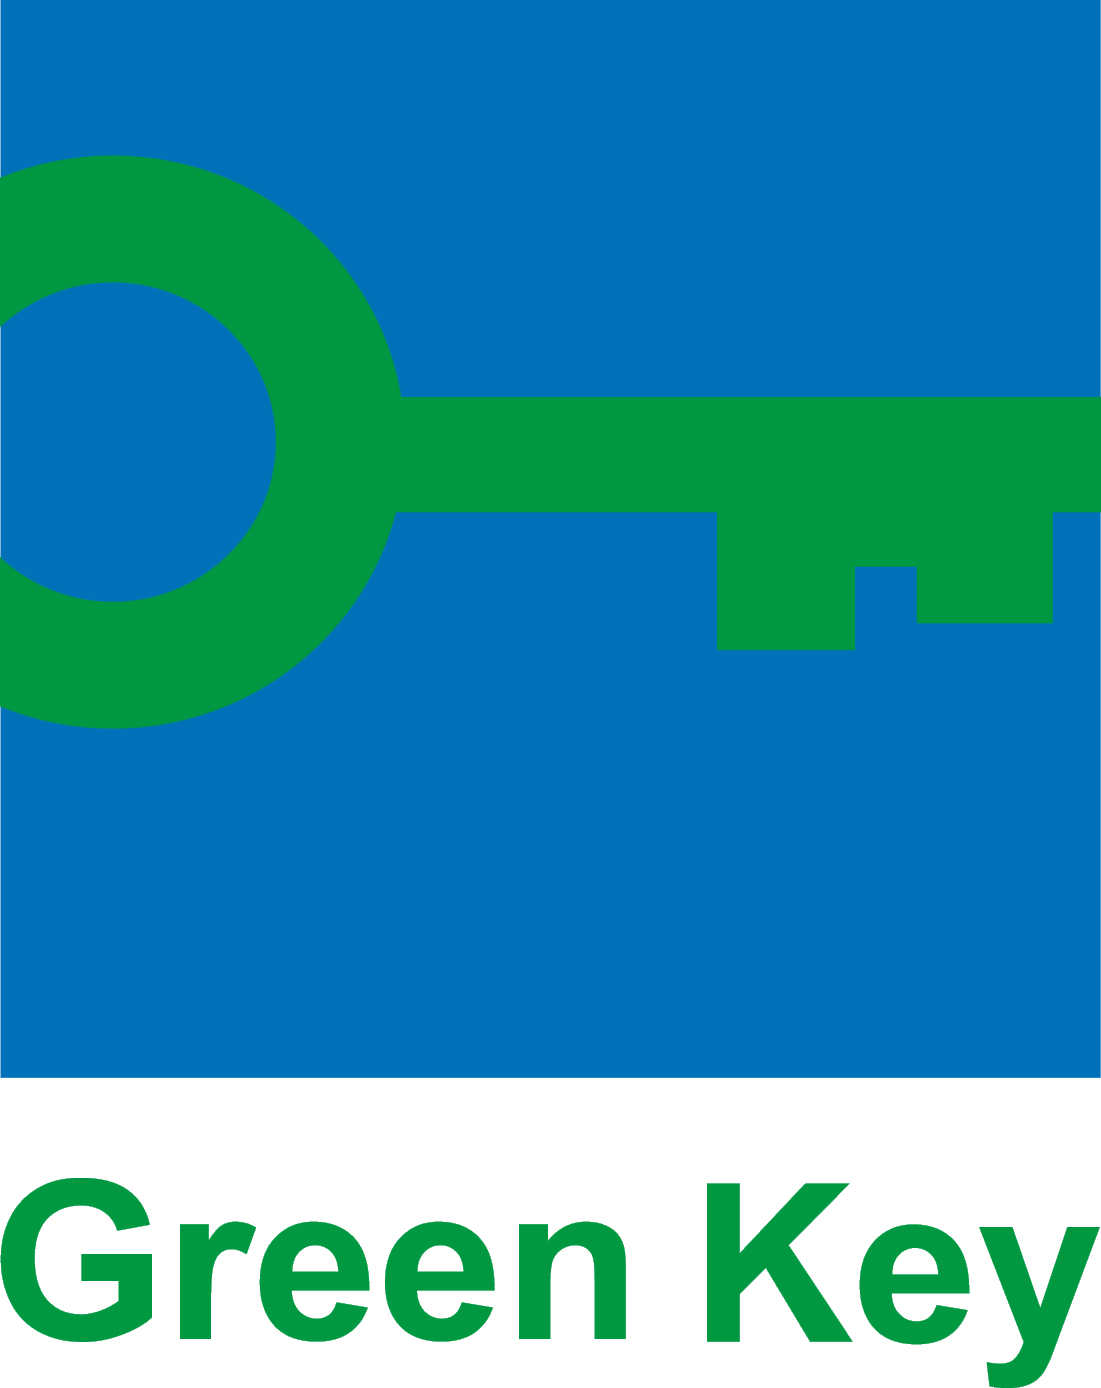 Logo 'Green Key' ecolabel